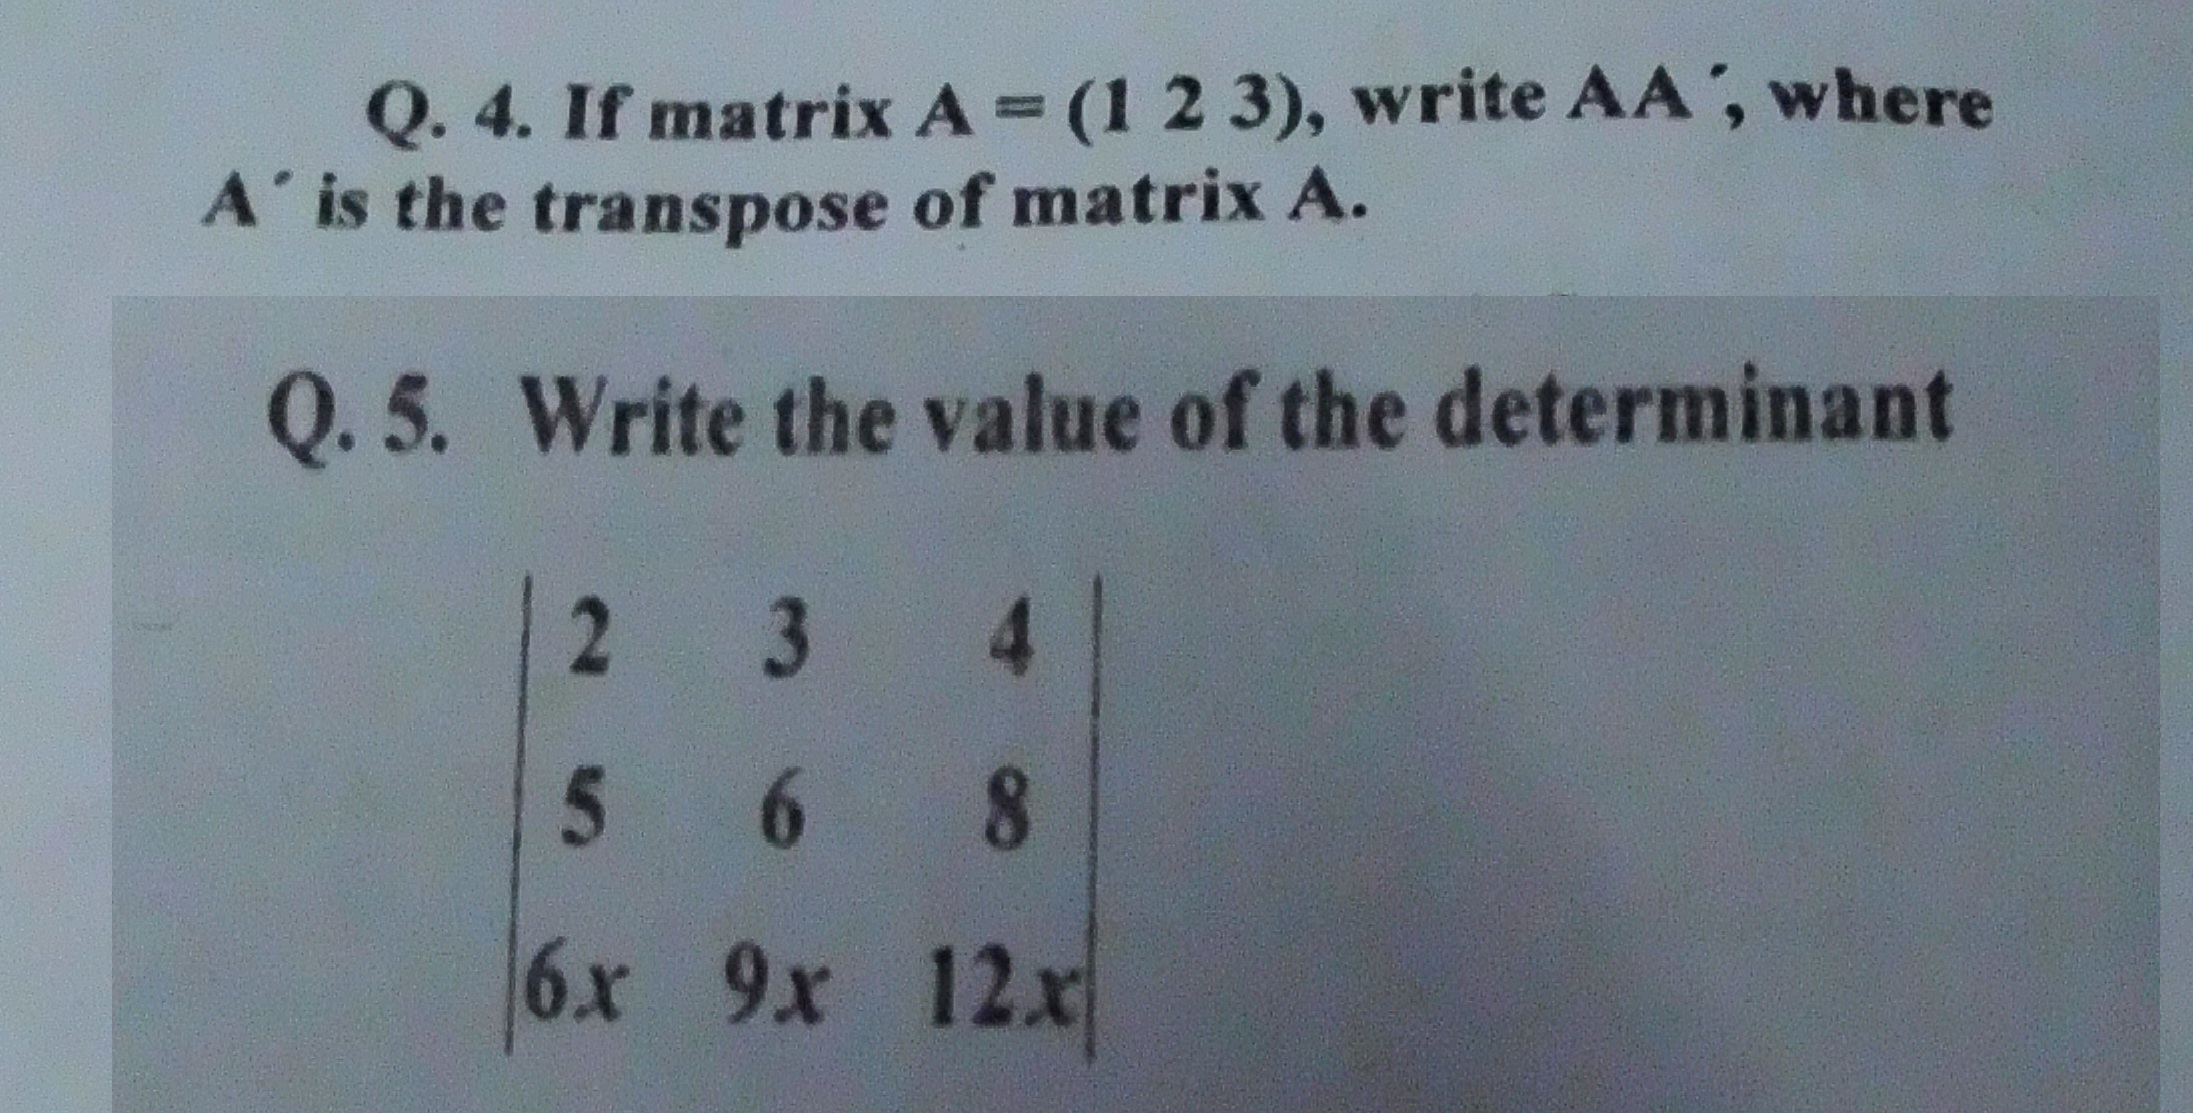 If matrix A = (1 2 3), write AA' where is the tr